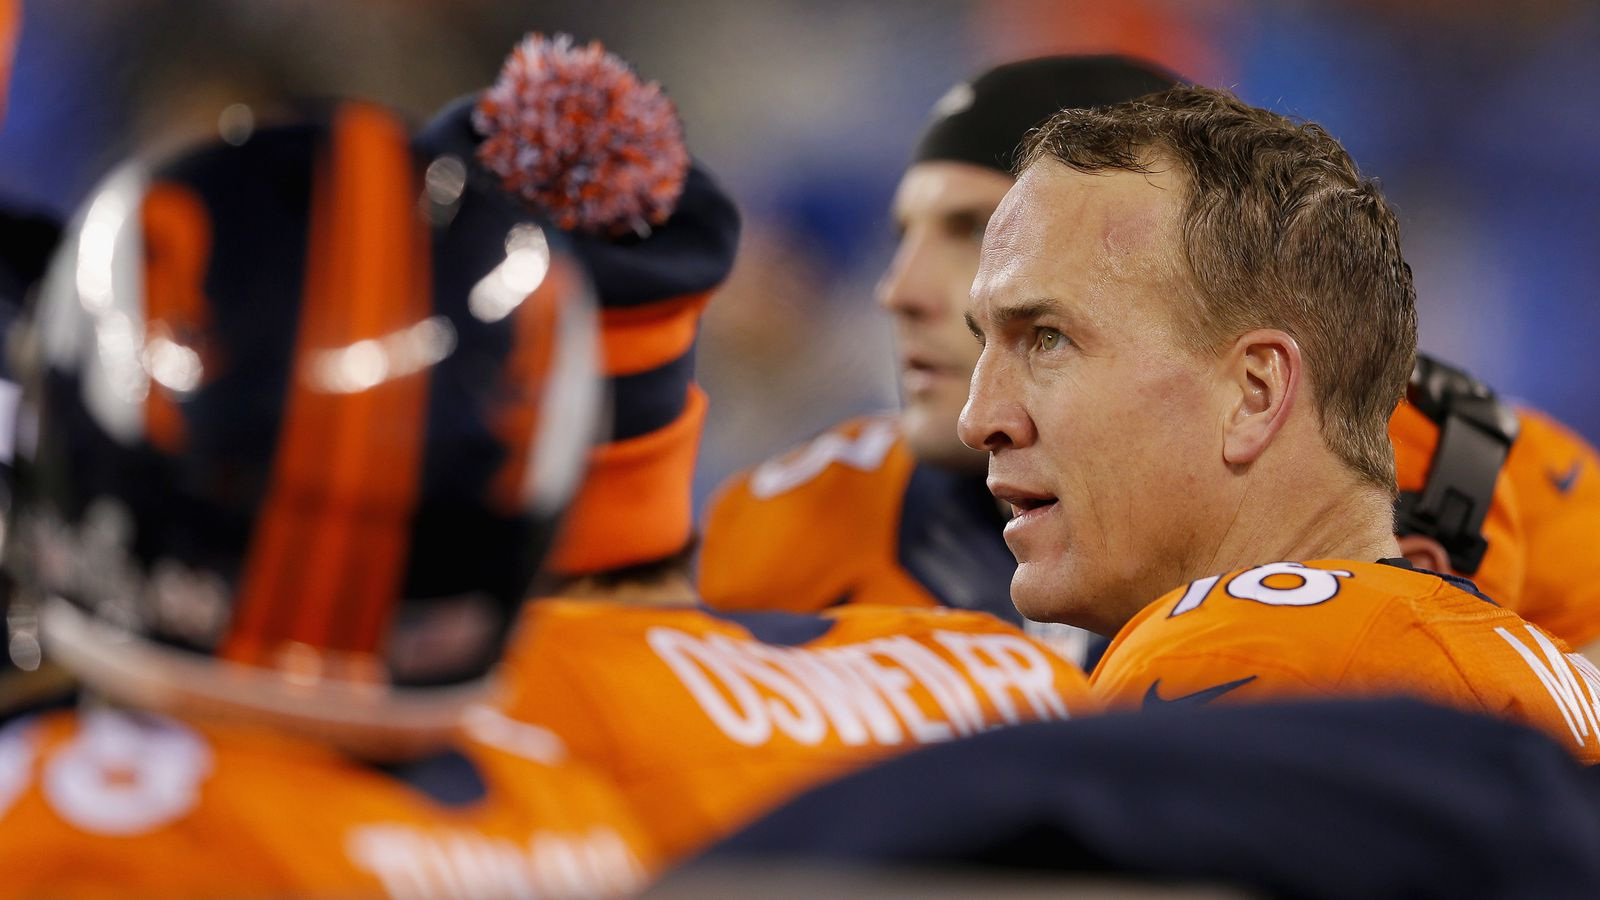 A Broncos fan's letter to Peyton Manning